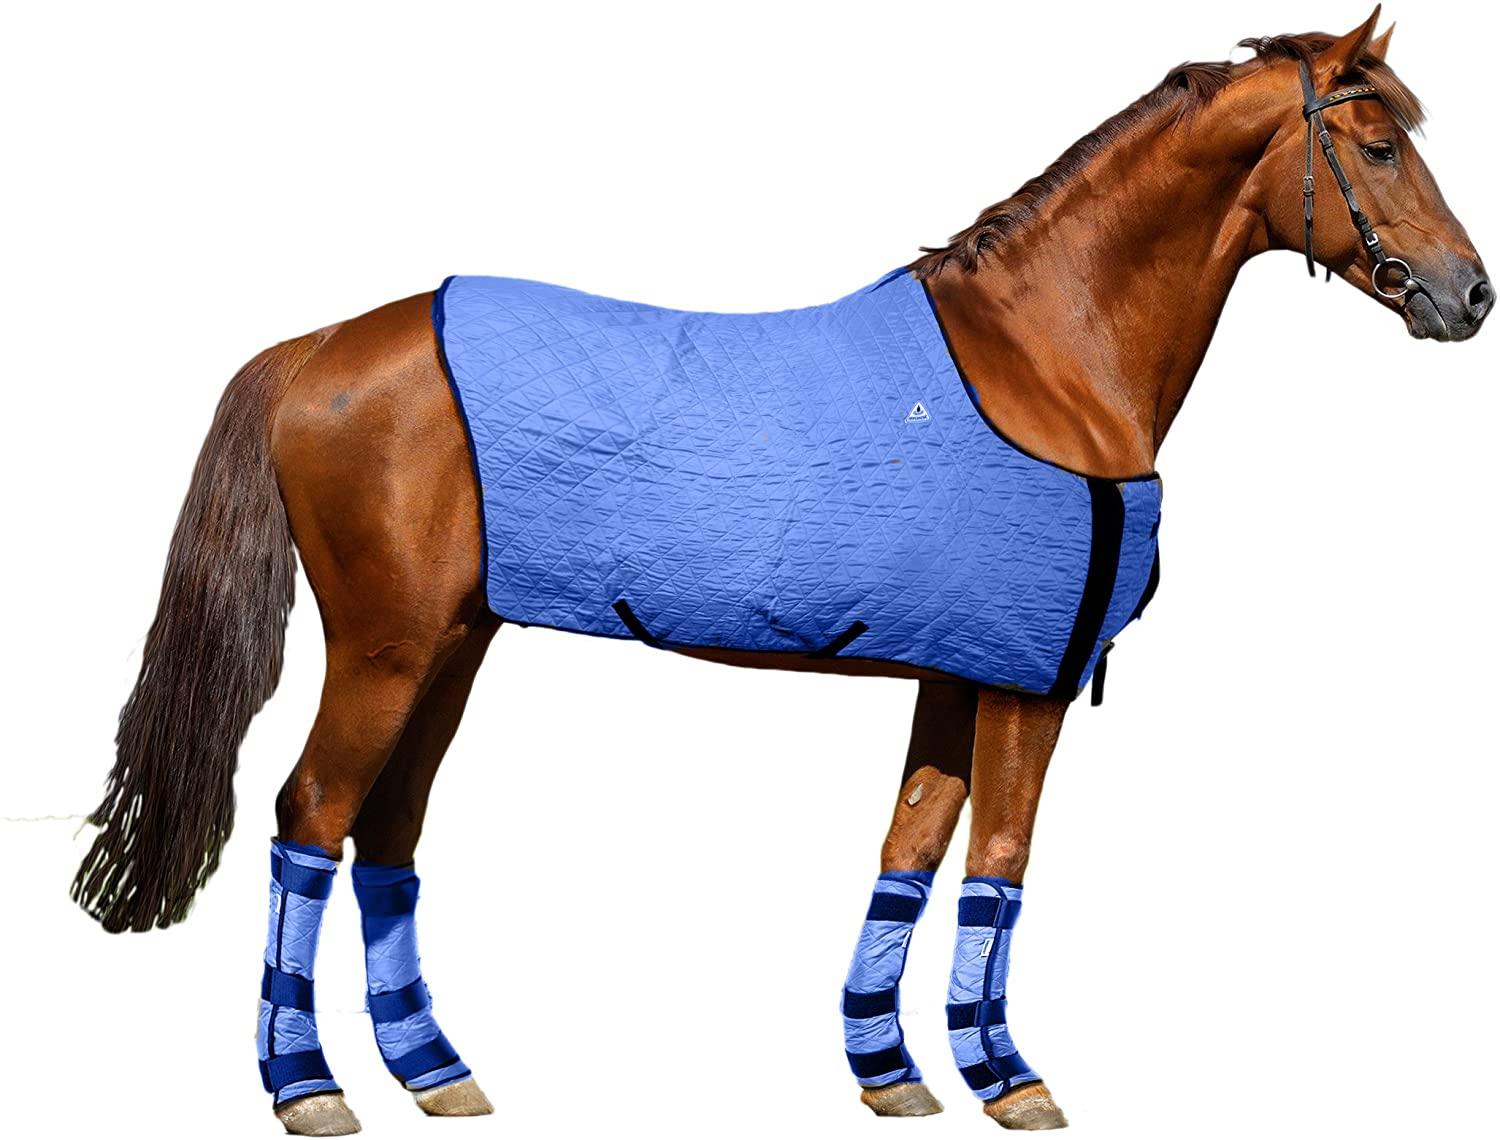 HyperKewl Evaporative Cooling Horse Blanket Large Blue Techniche International 8510L-BL